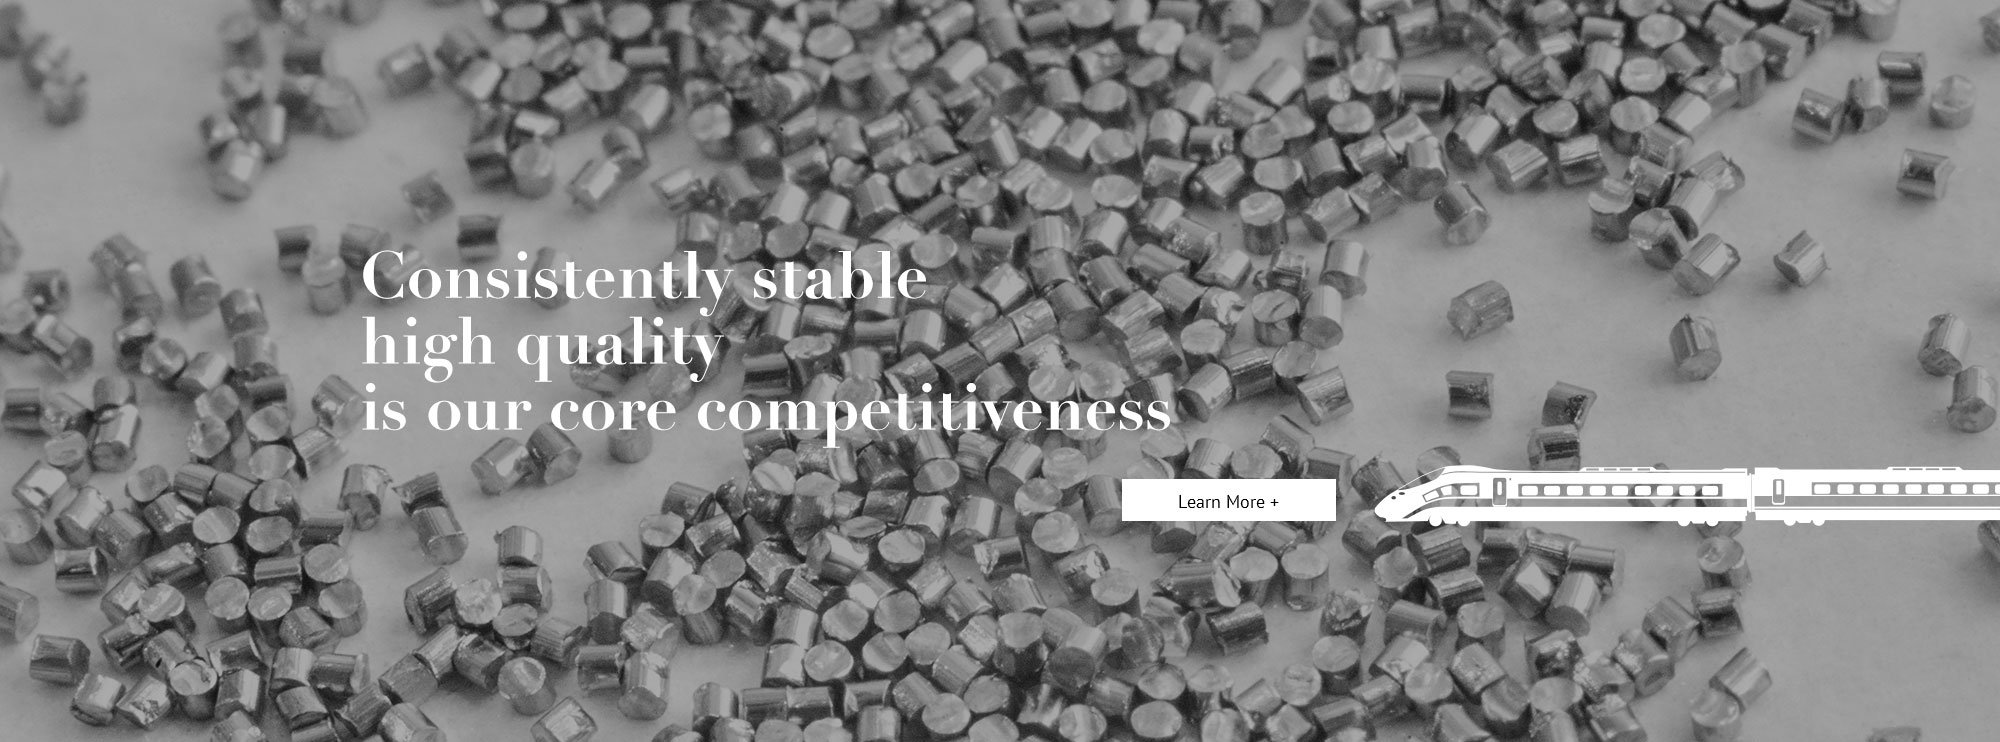 Consistently stable high quality is our core competitiveness